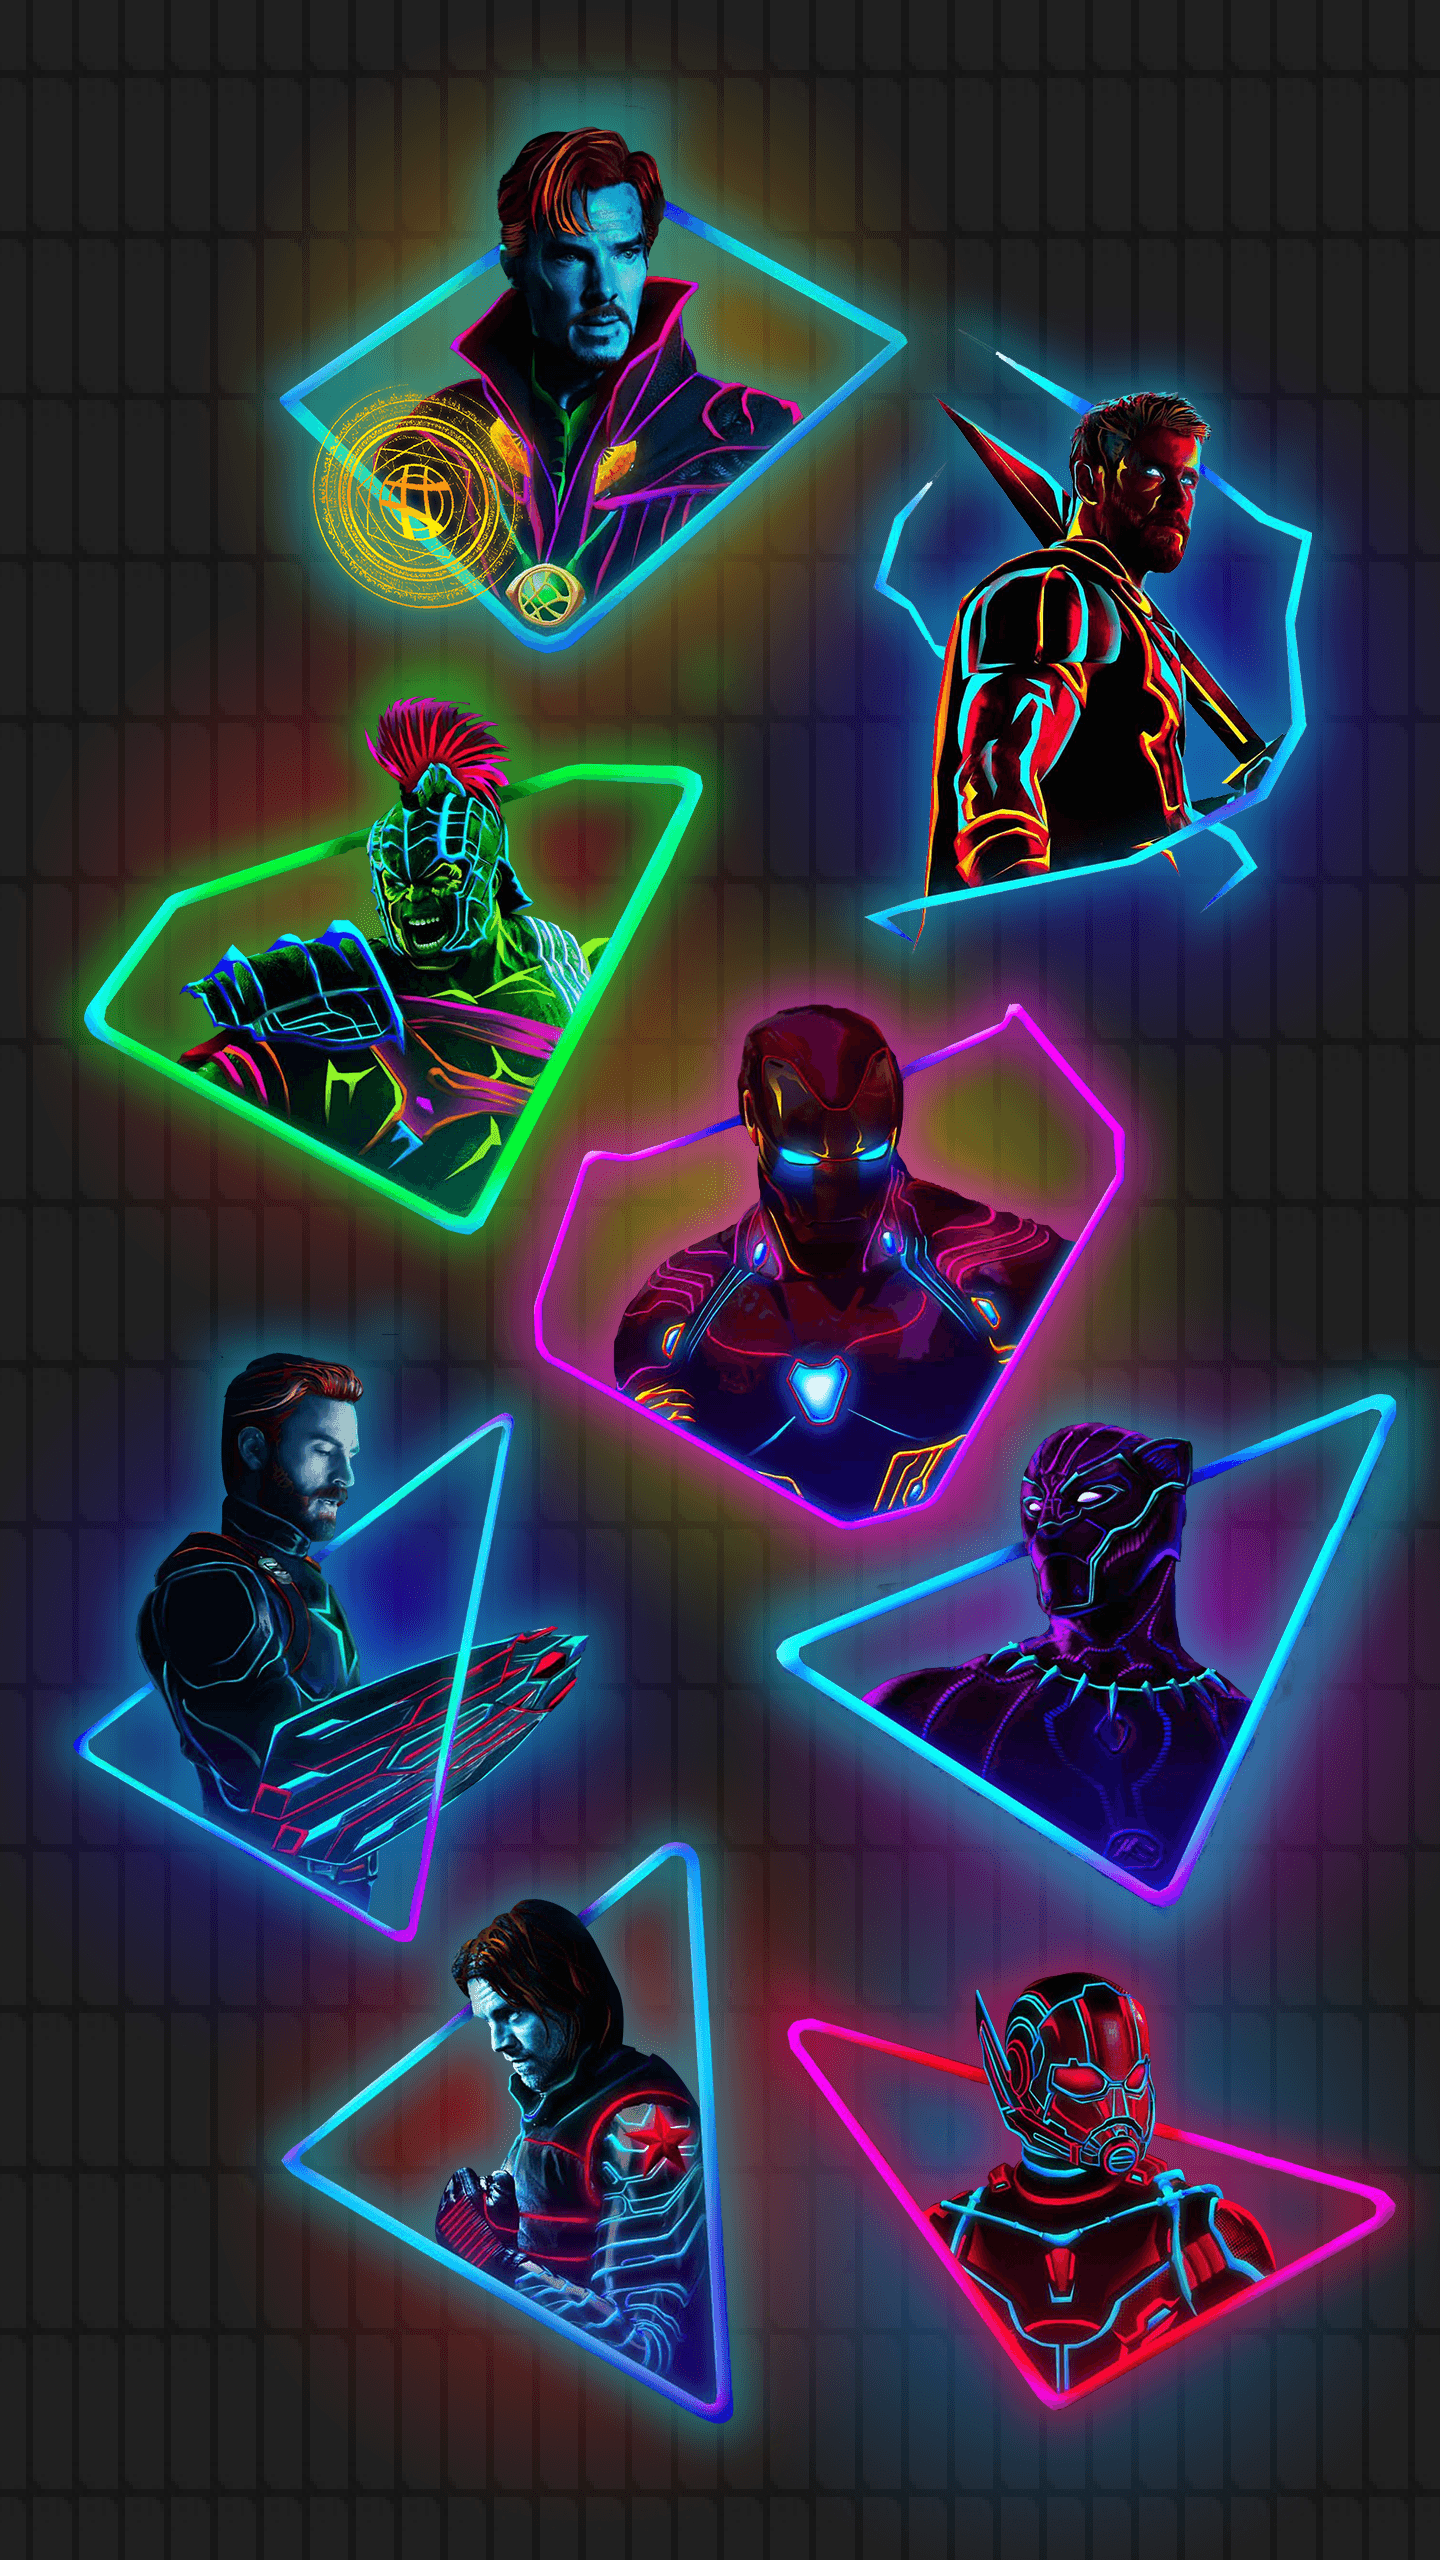 Neon Avengers Wallpapers Top Free Neon Avengers Backgrounds Wallpaperaccess